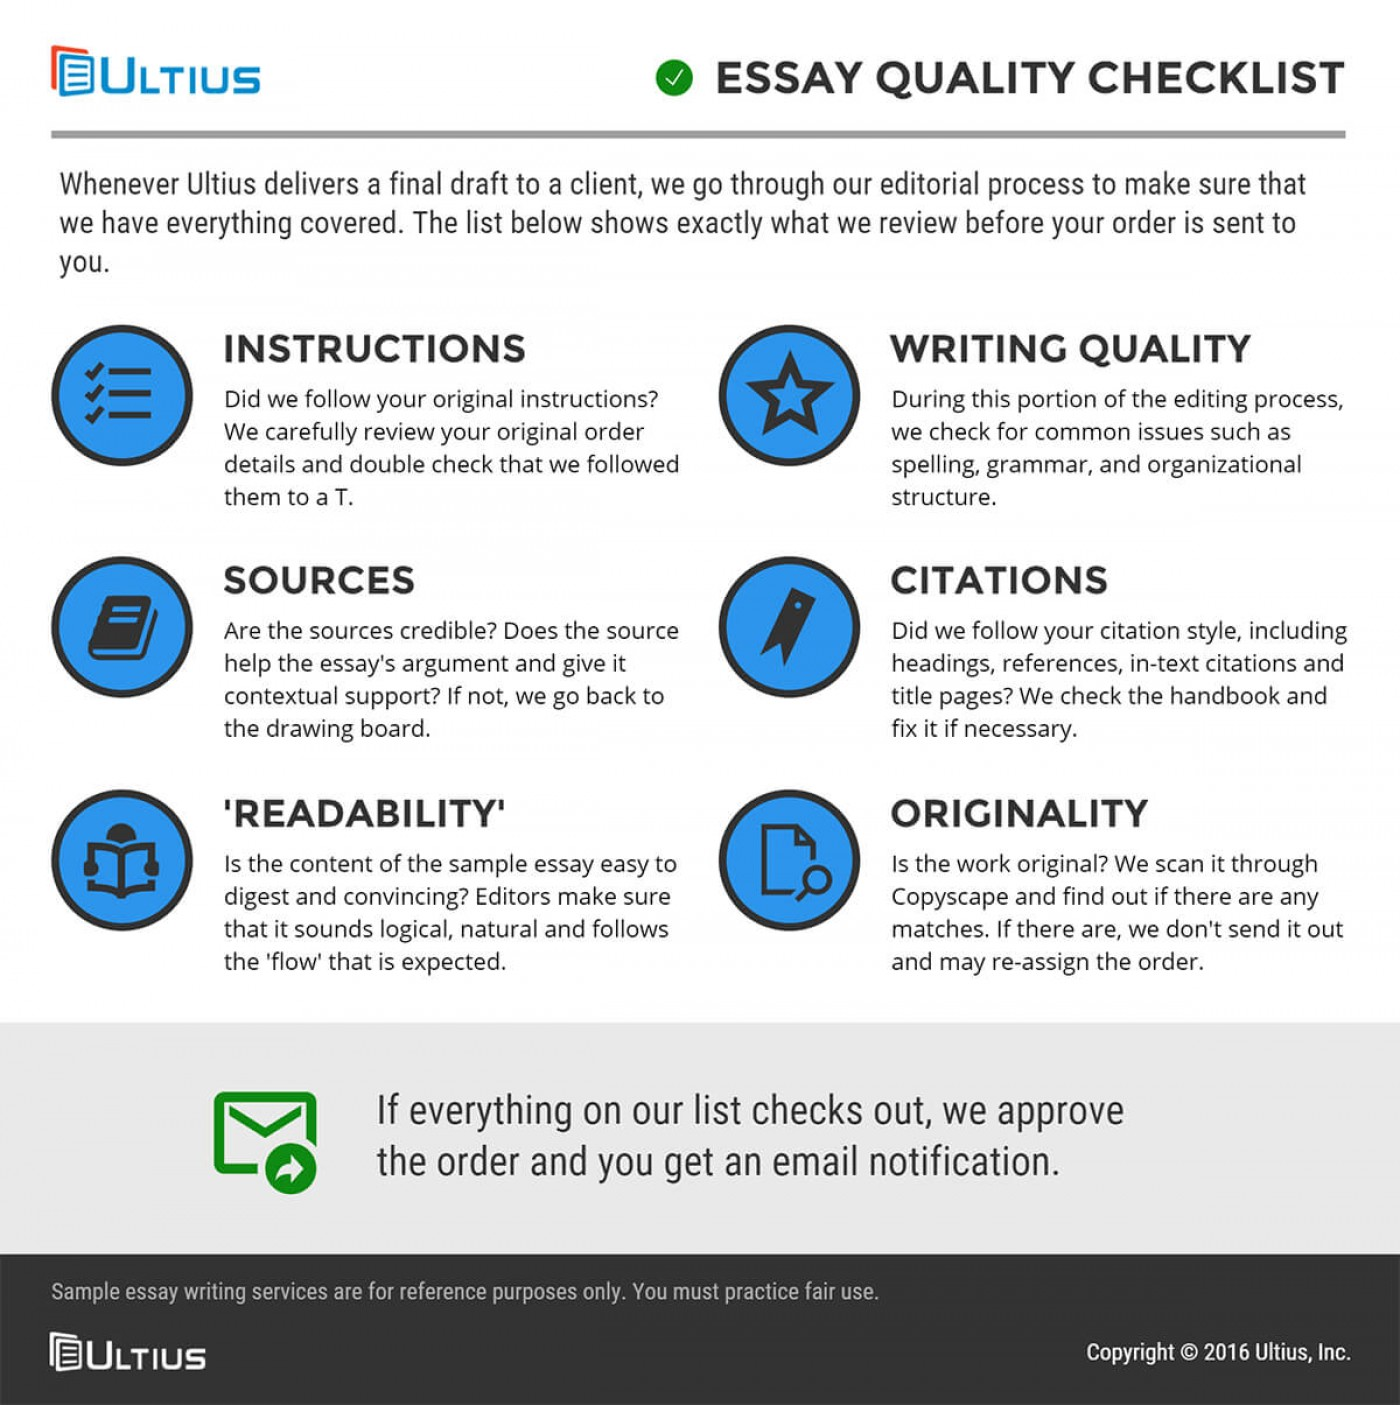 014 Essay Example Purchased Quality Checklist Dreaded Persuasive Rubric Middle School Structure Ppt Graphic Organizer 1400